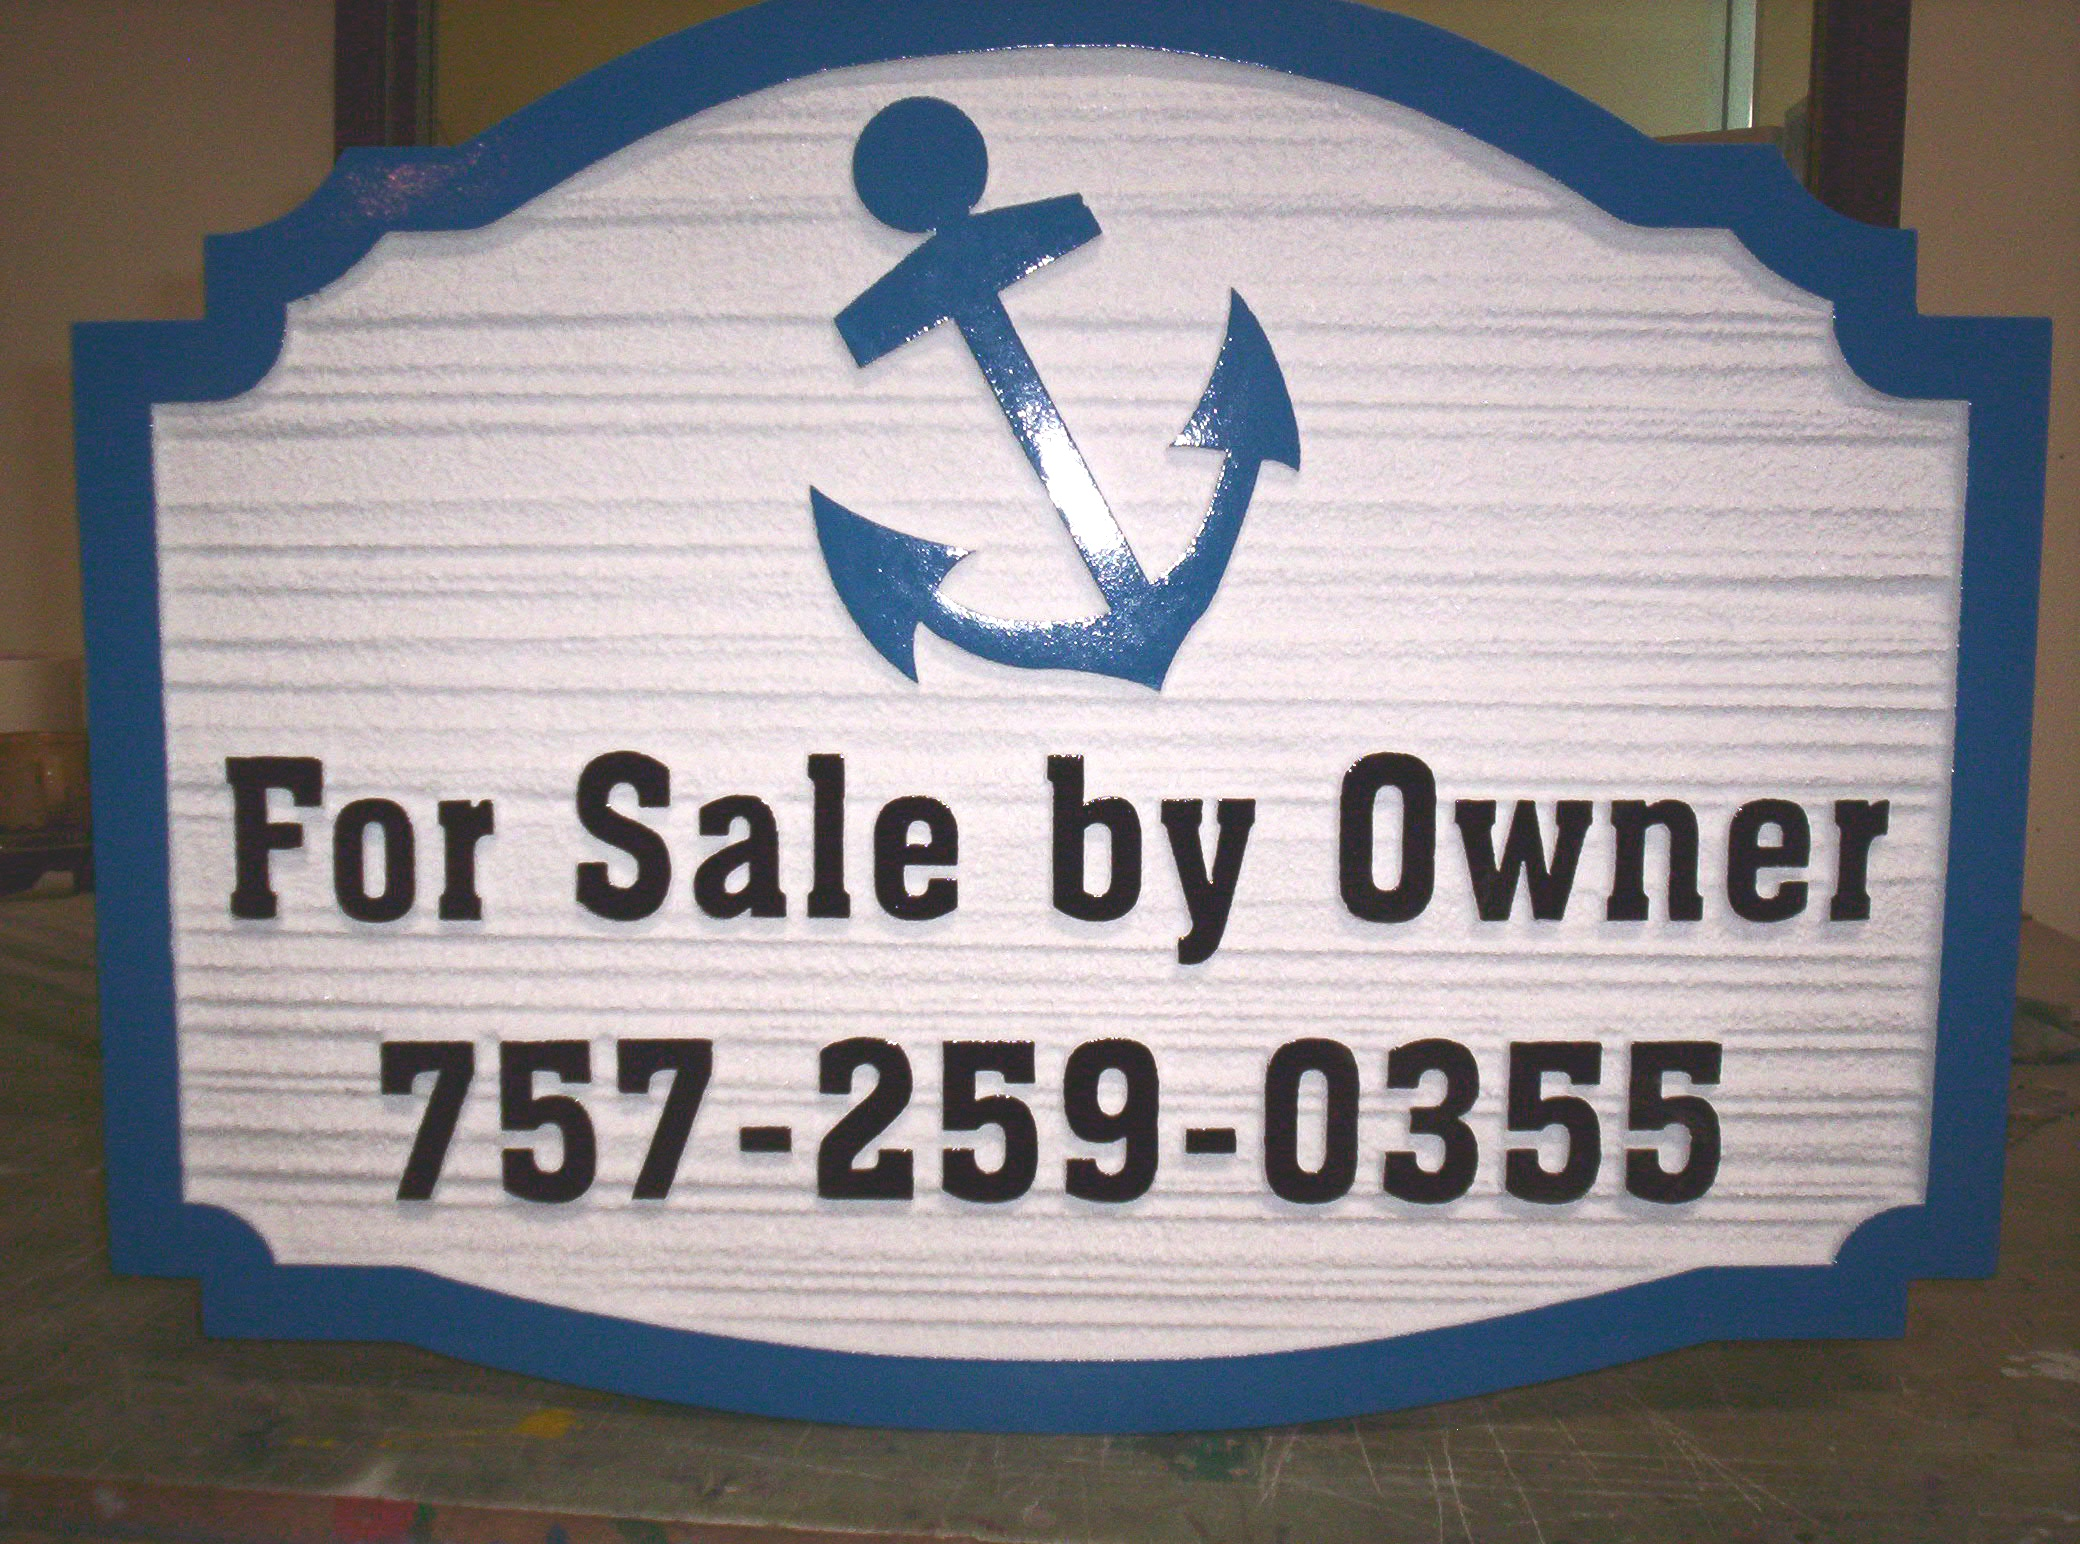 C12410 - For Sale by Owner Sign, Carved Wood Grain